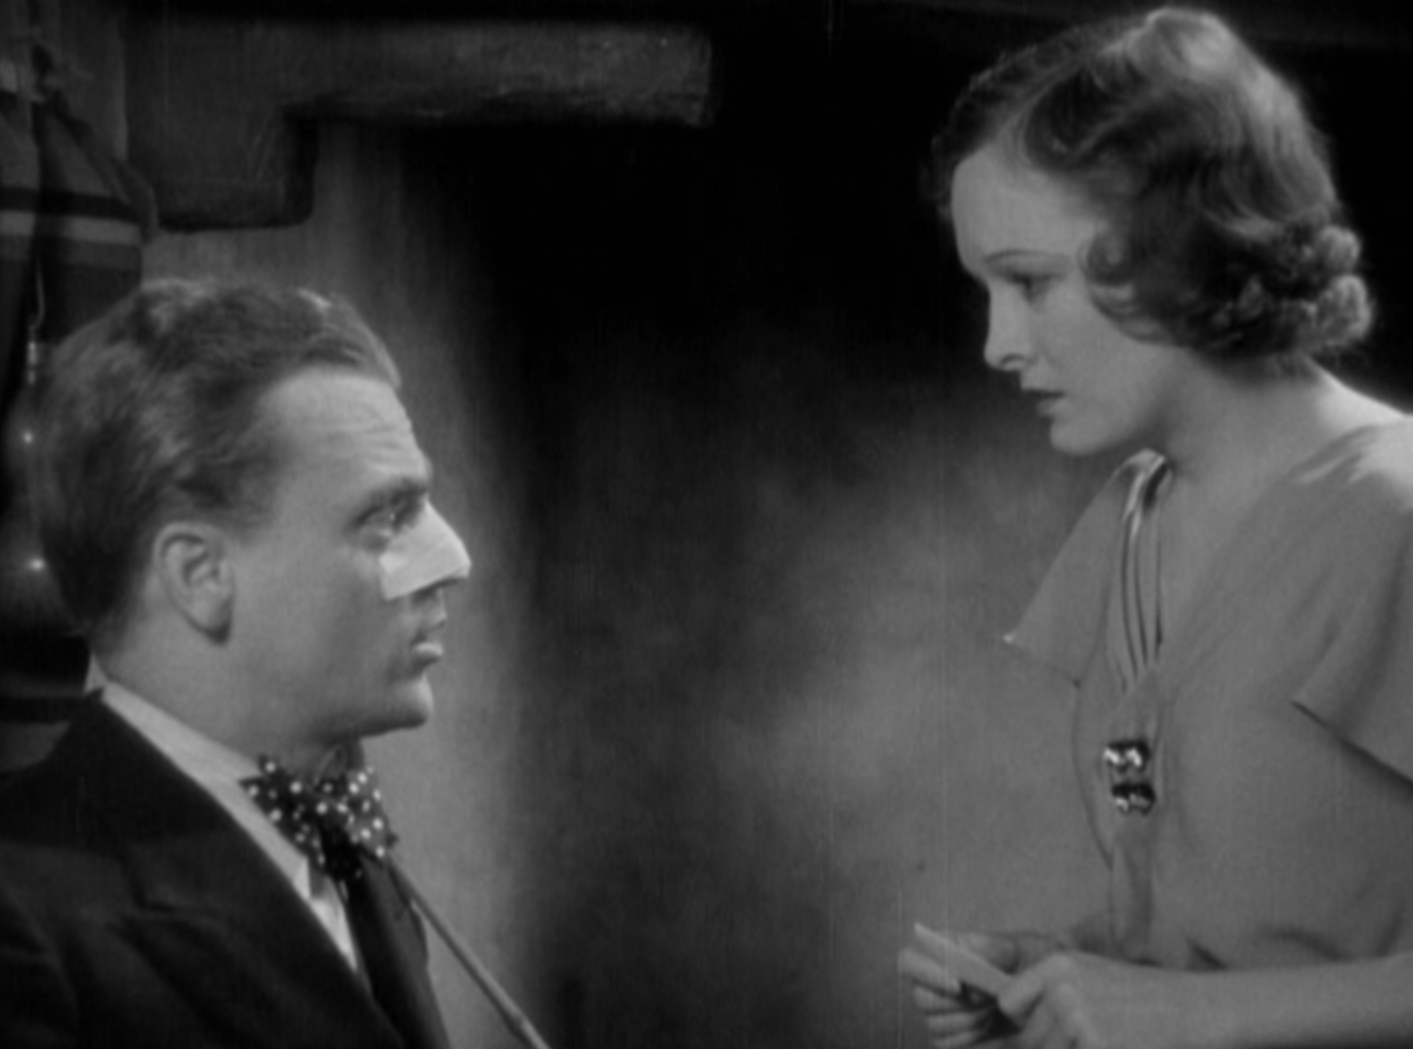 Winner Take All (1932) Starring James Cagney and Virginia